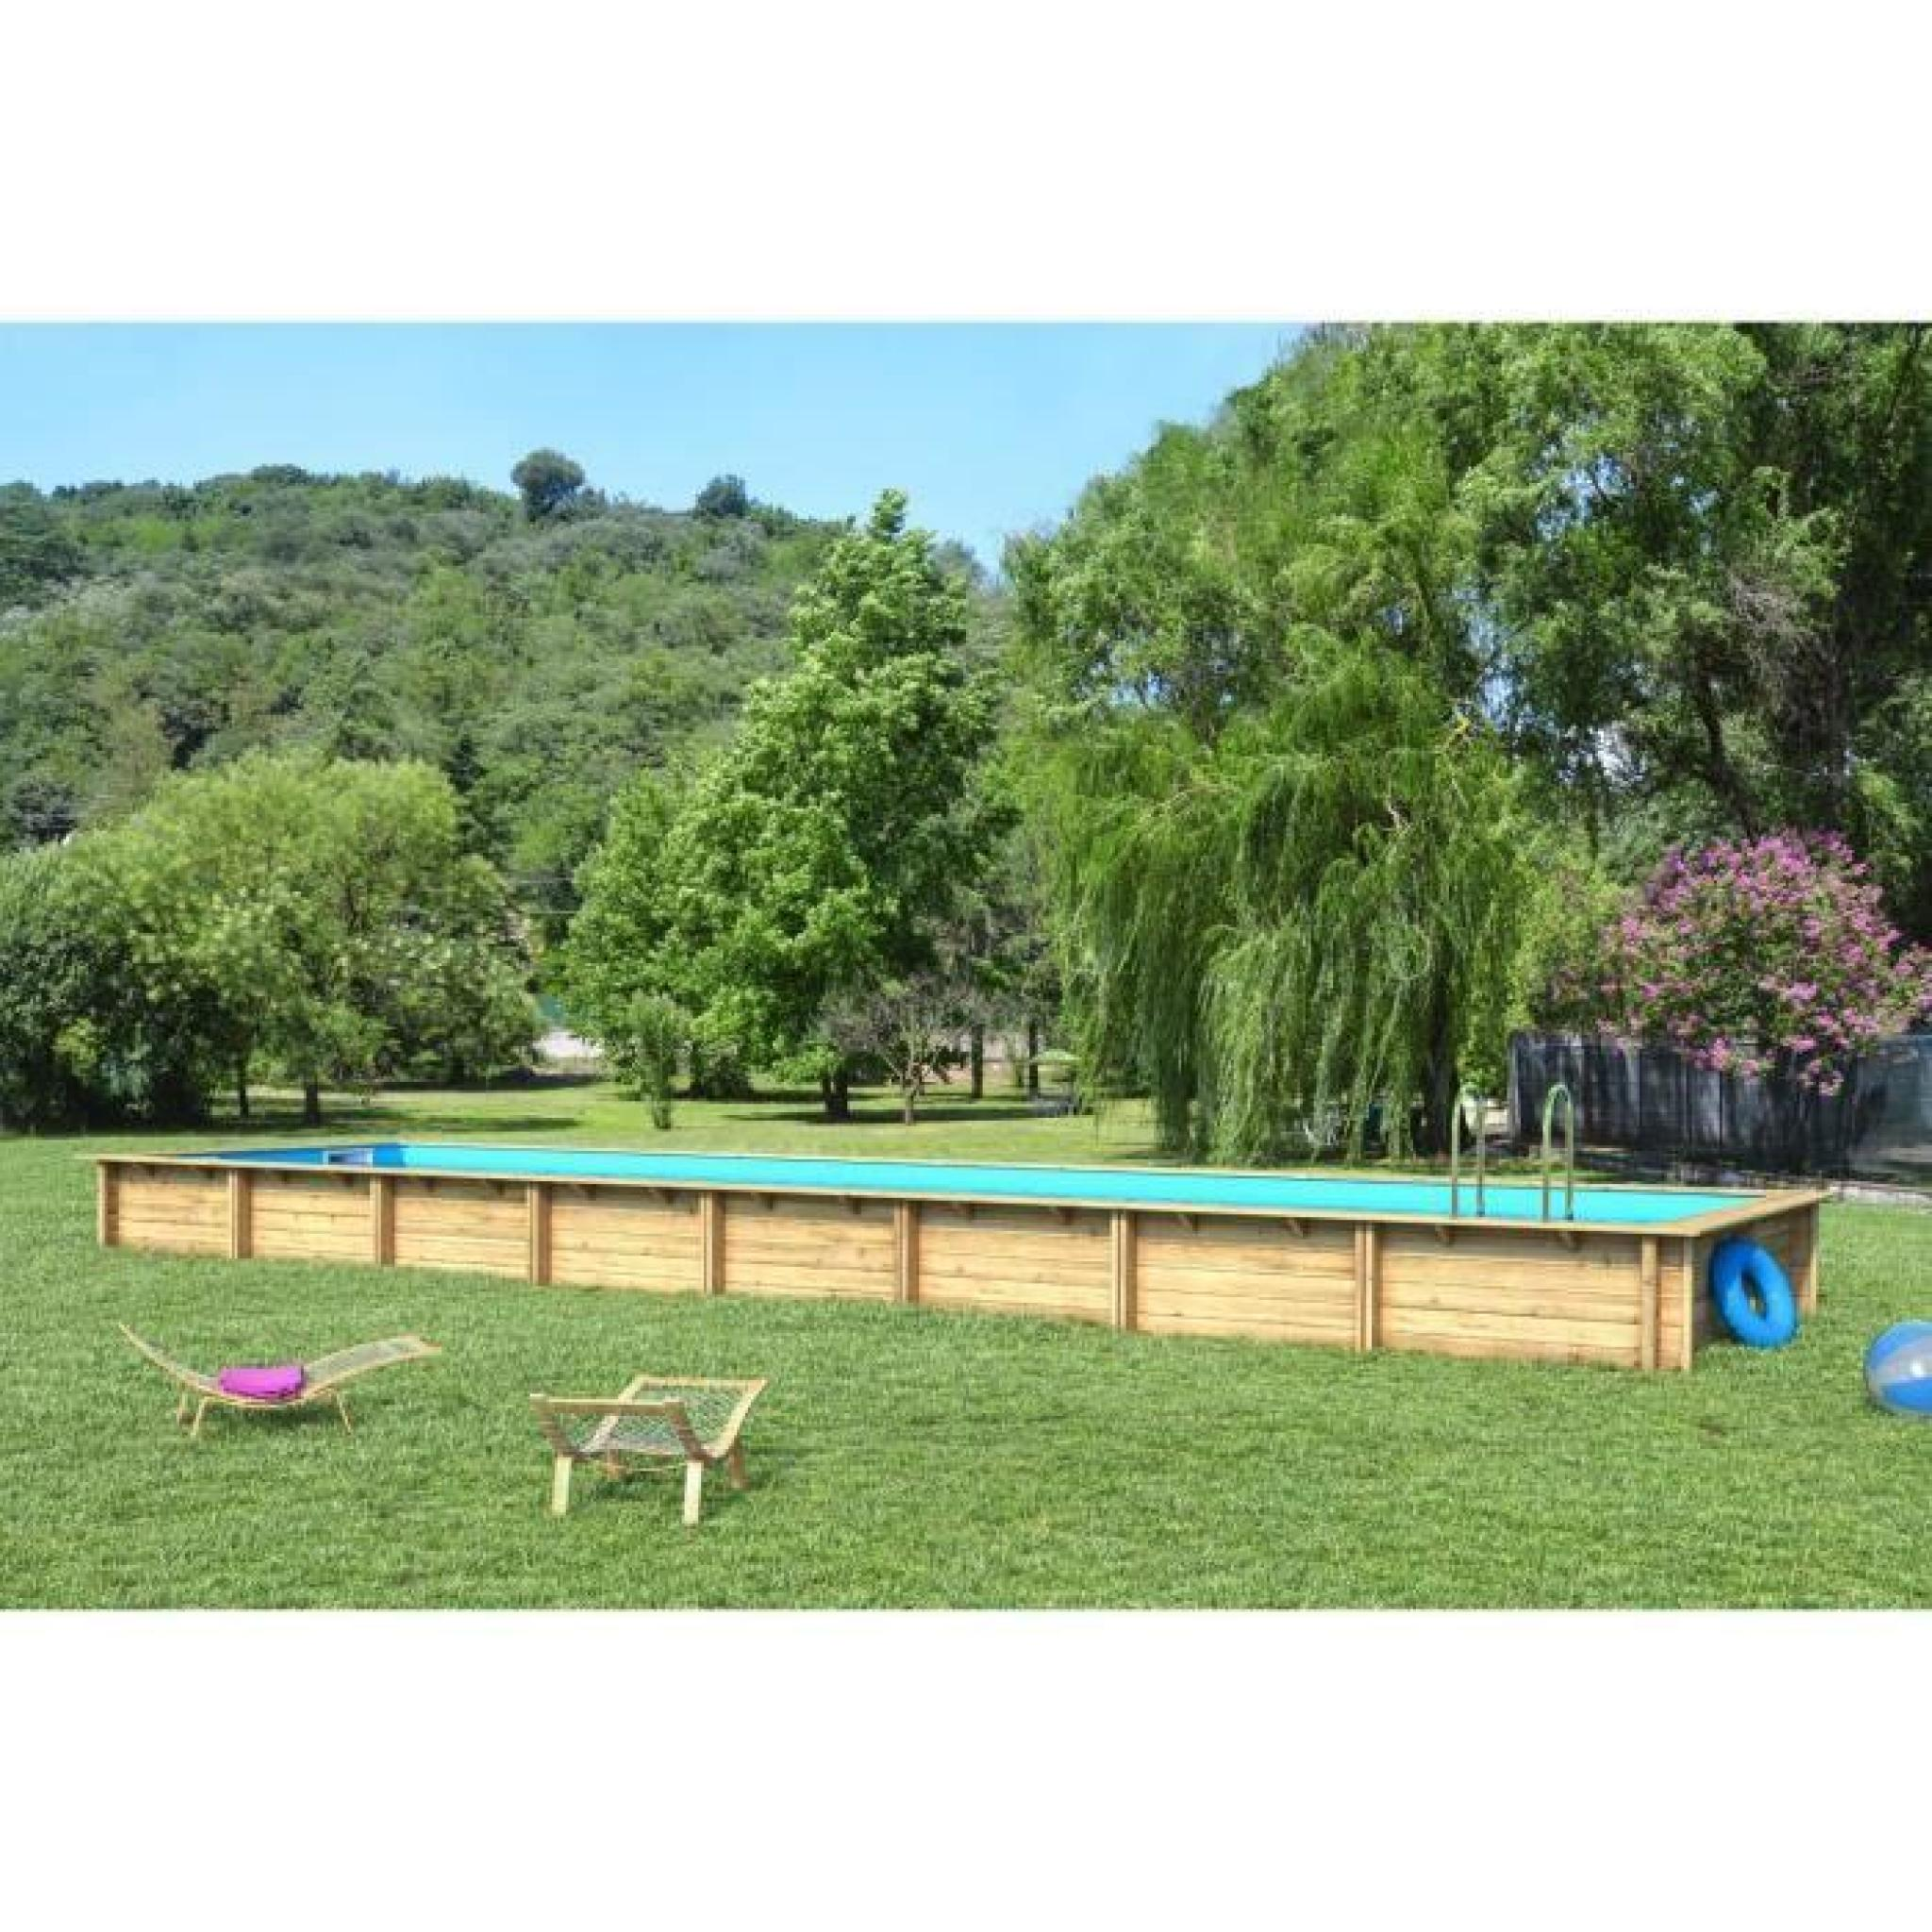 Weva piscine bois rectangle 9x3 m hauteur 1 33 m achat for Piscine jardin rectangle